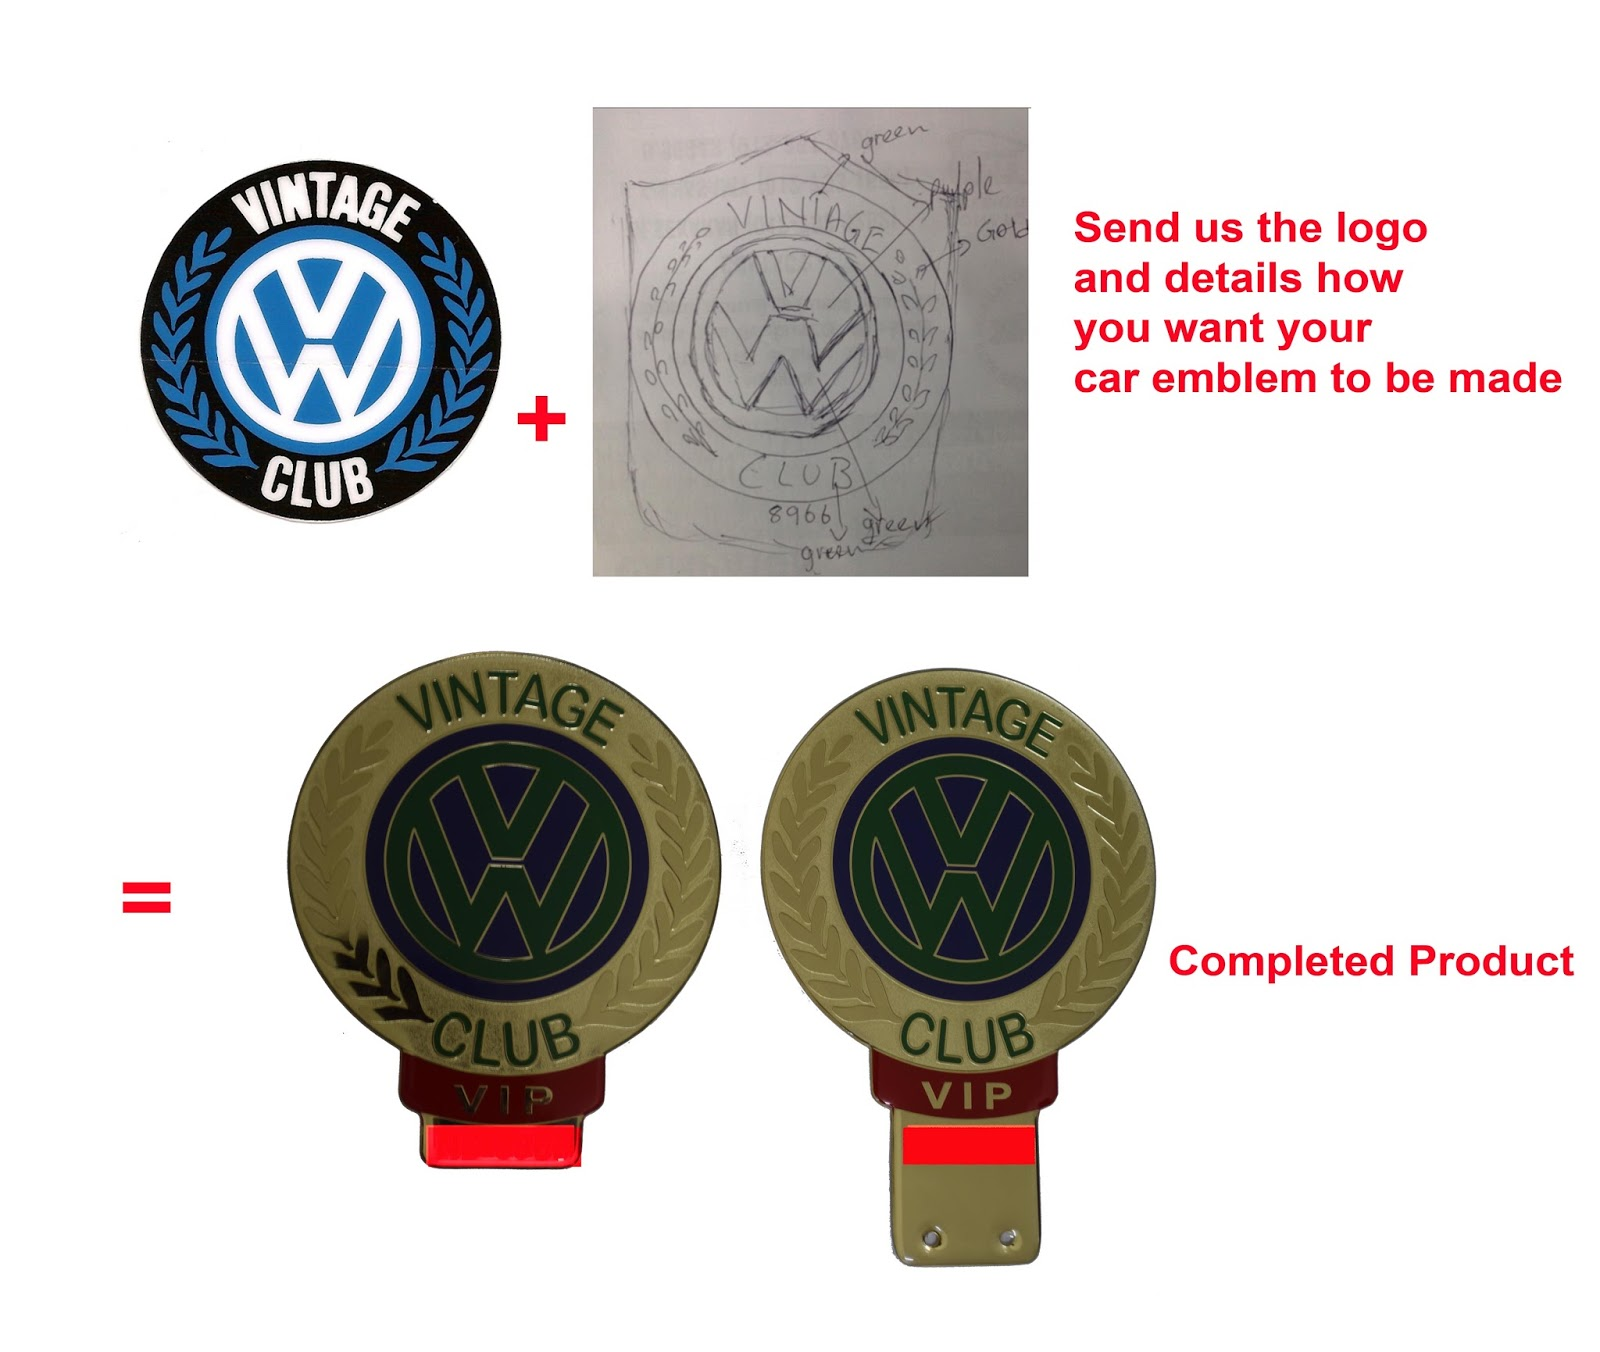 Custom make vip car badges vip car crown your own design vip car badges your company logo car badges malaysia vip car crown vip malaysia car emblem